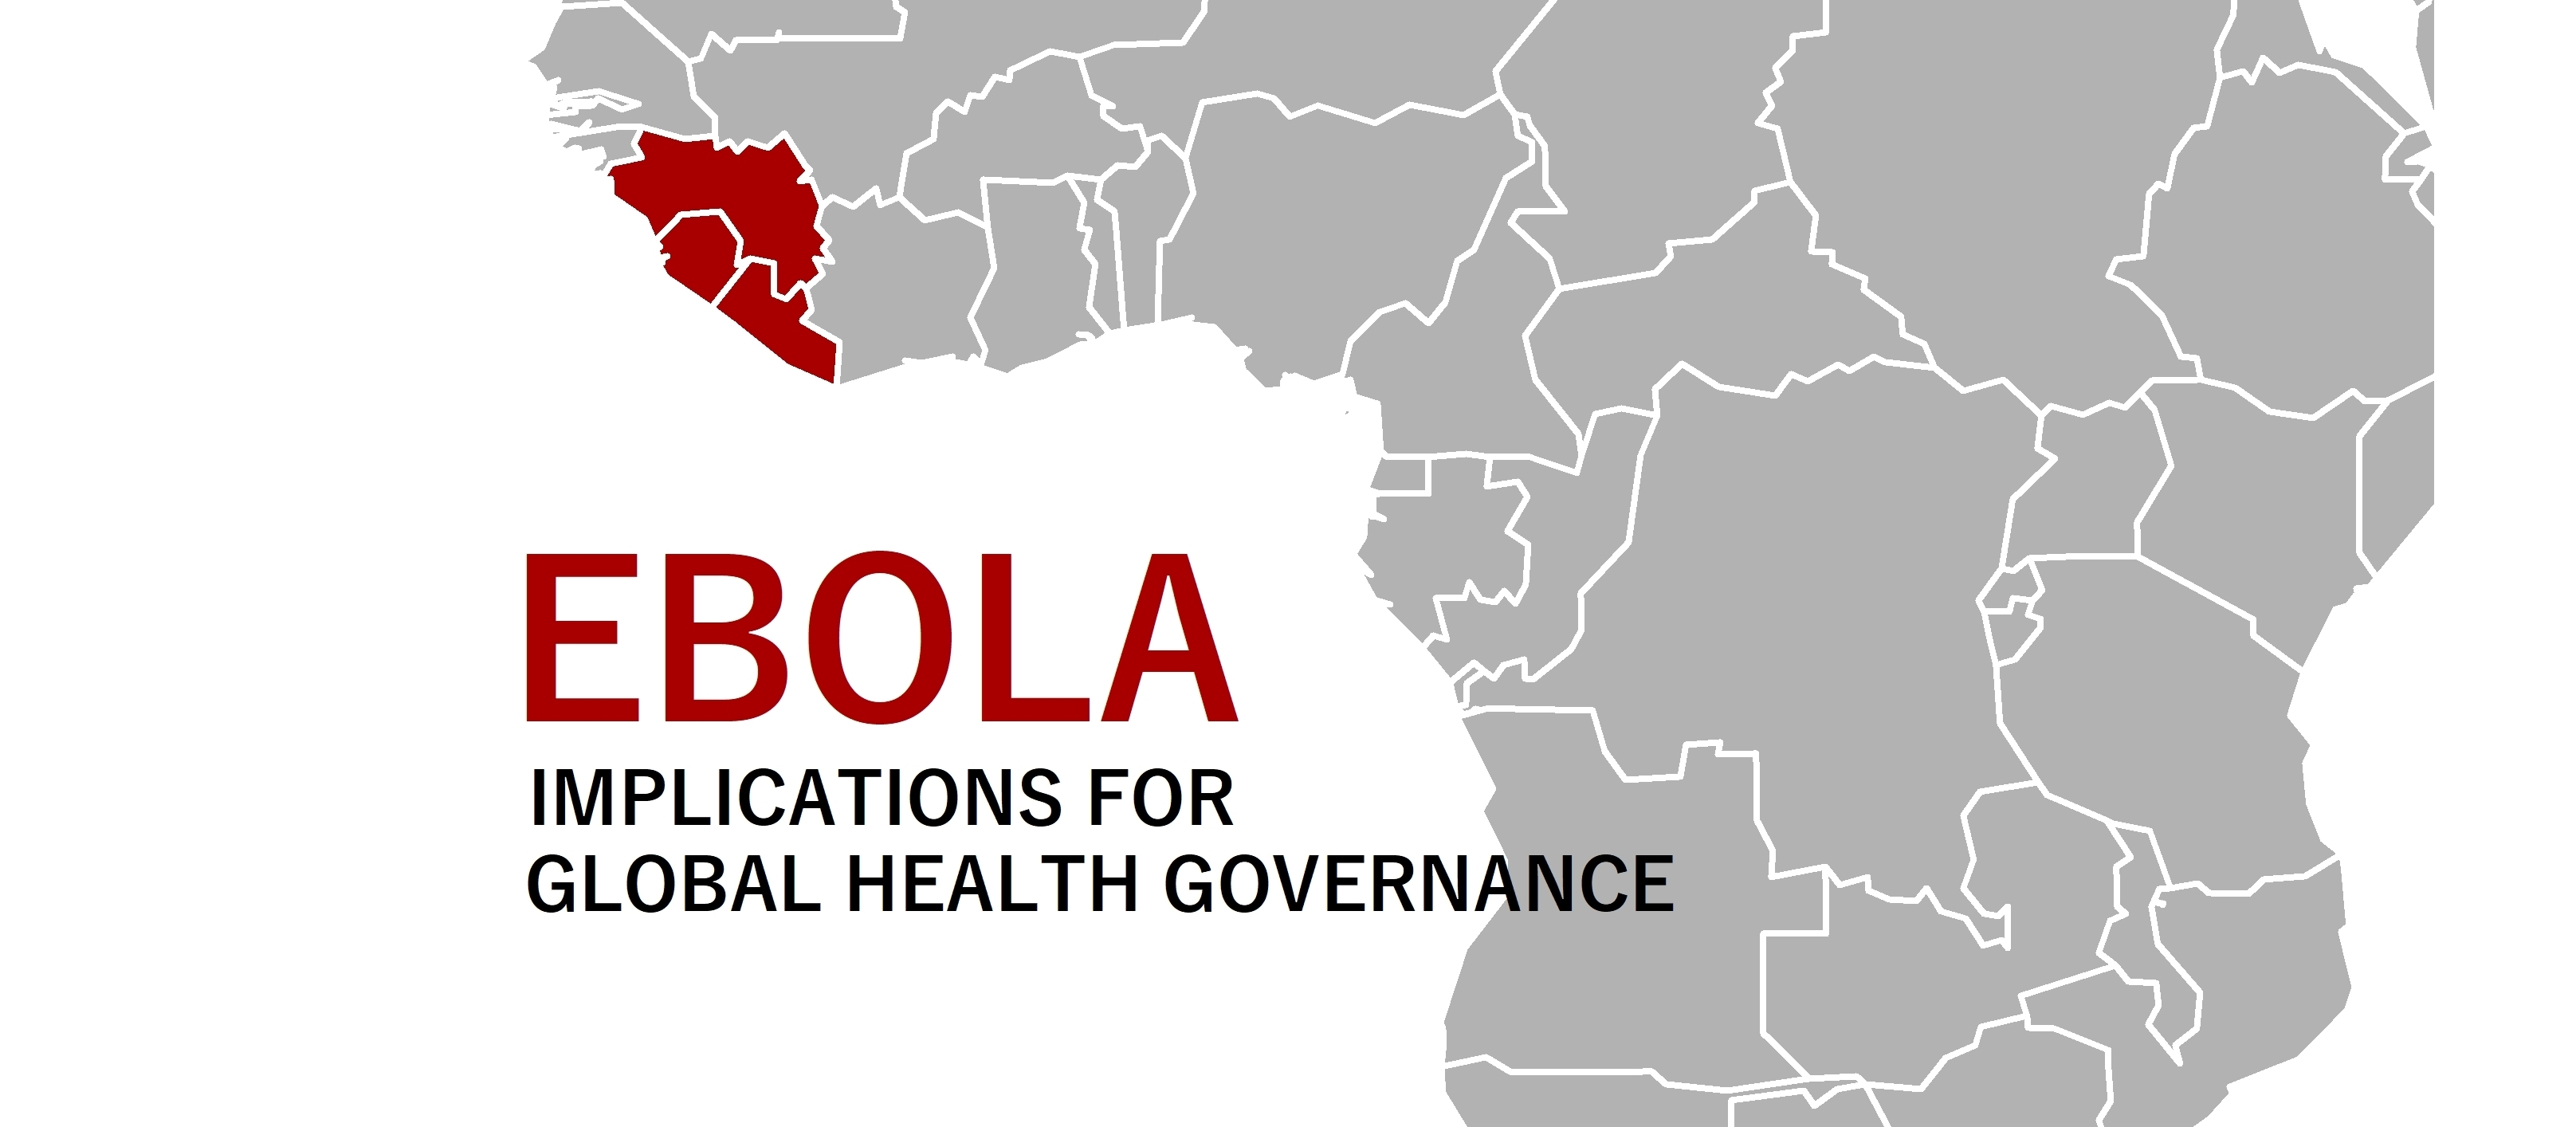 Fear, Apathy, and the Ebola Crisis (2014-15): Psychology and Problems of Global Health Governance